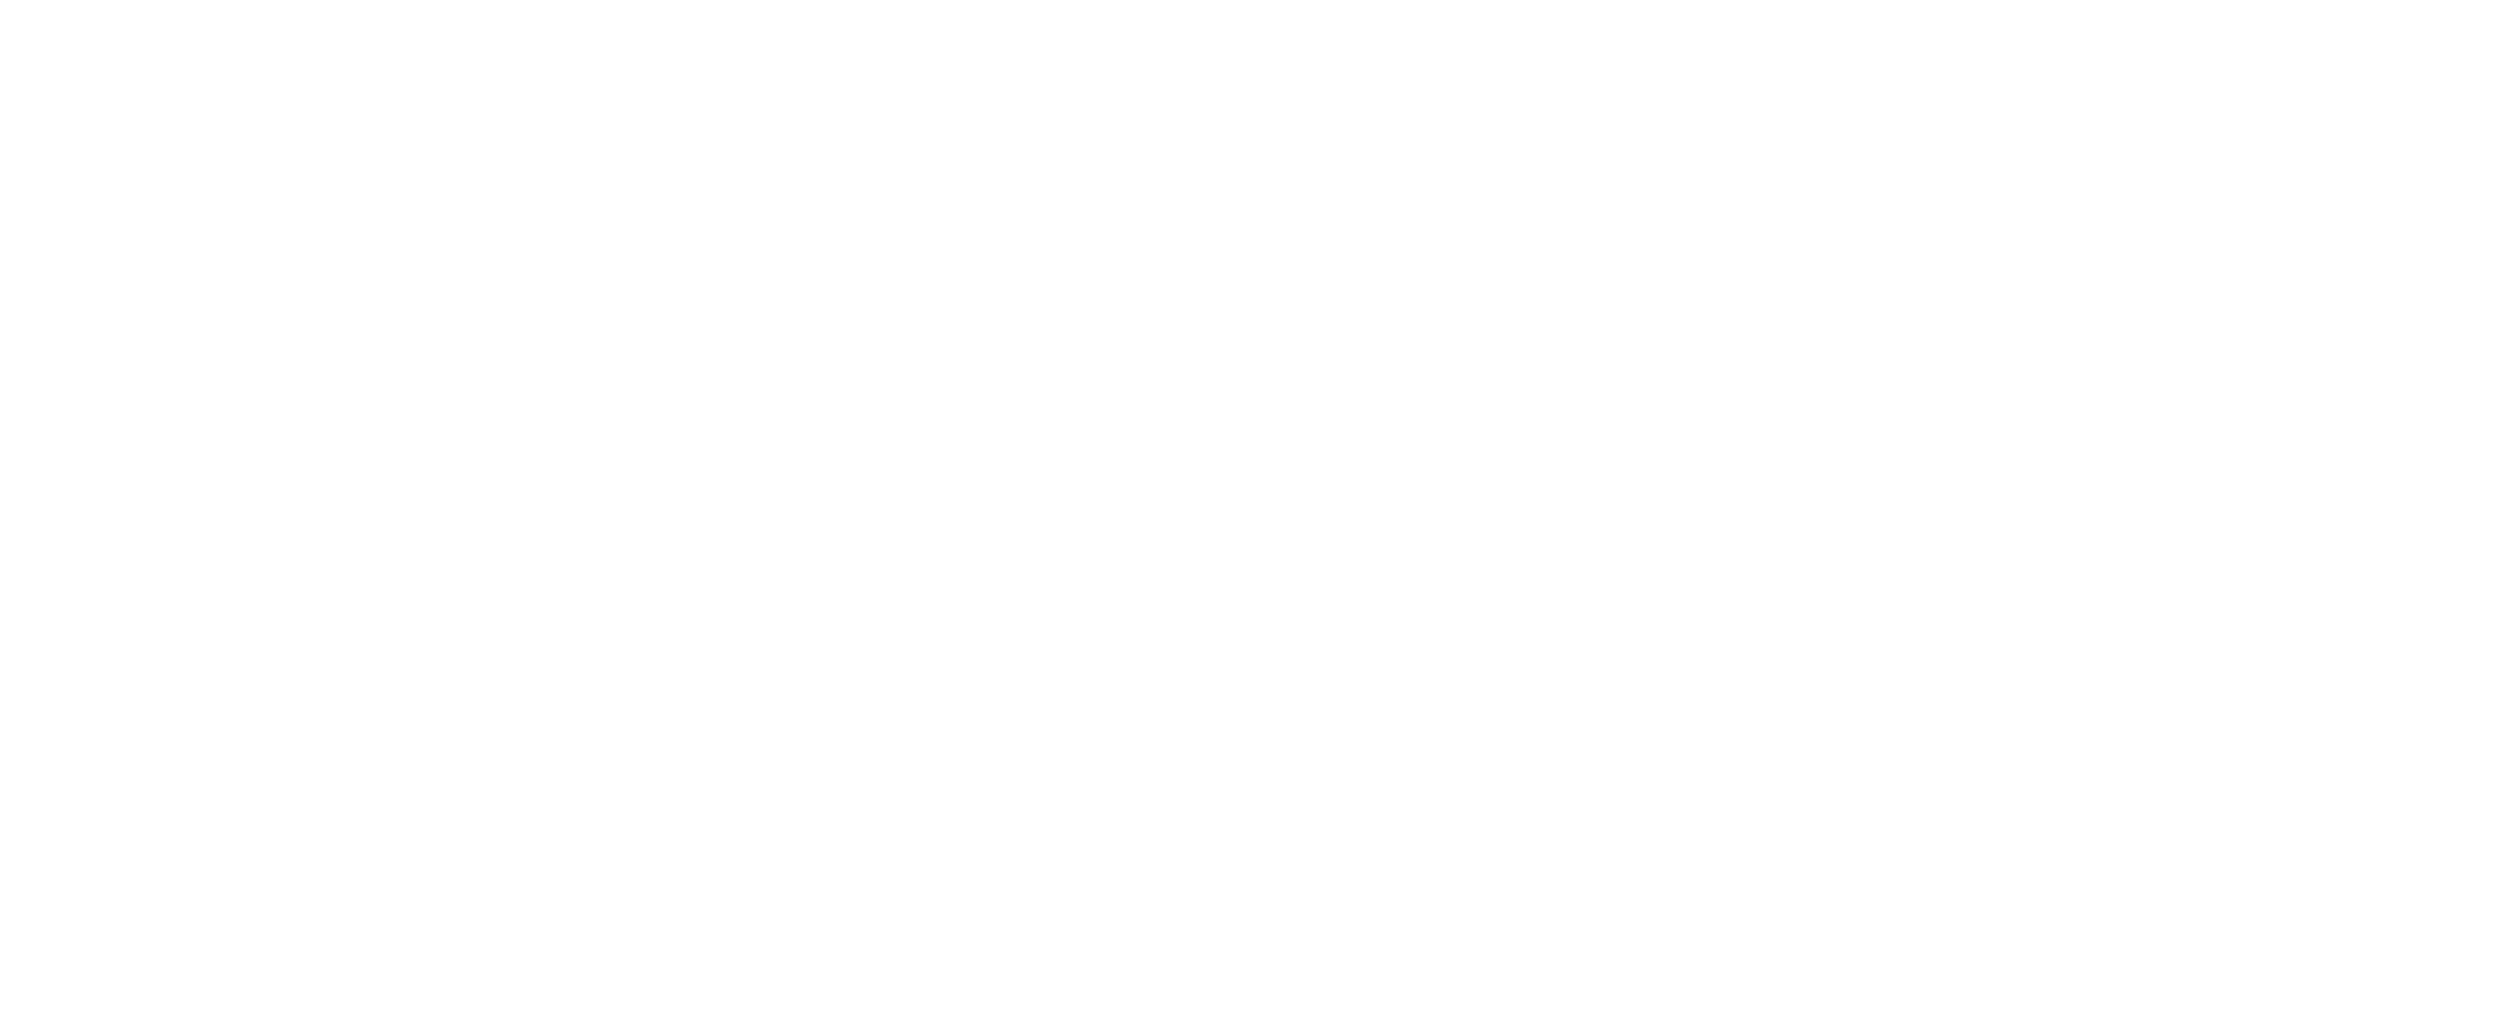 Amazon png. Home fund